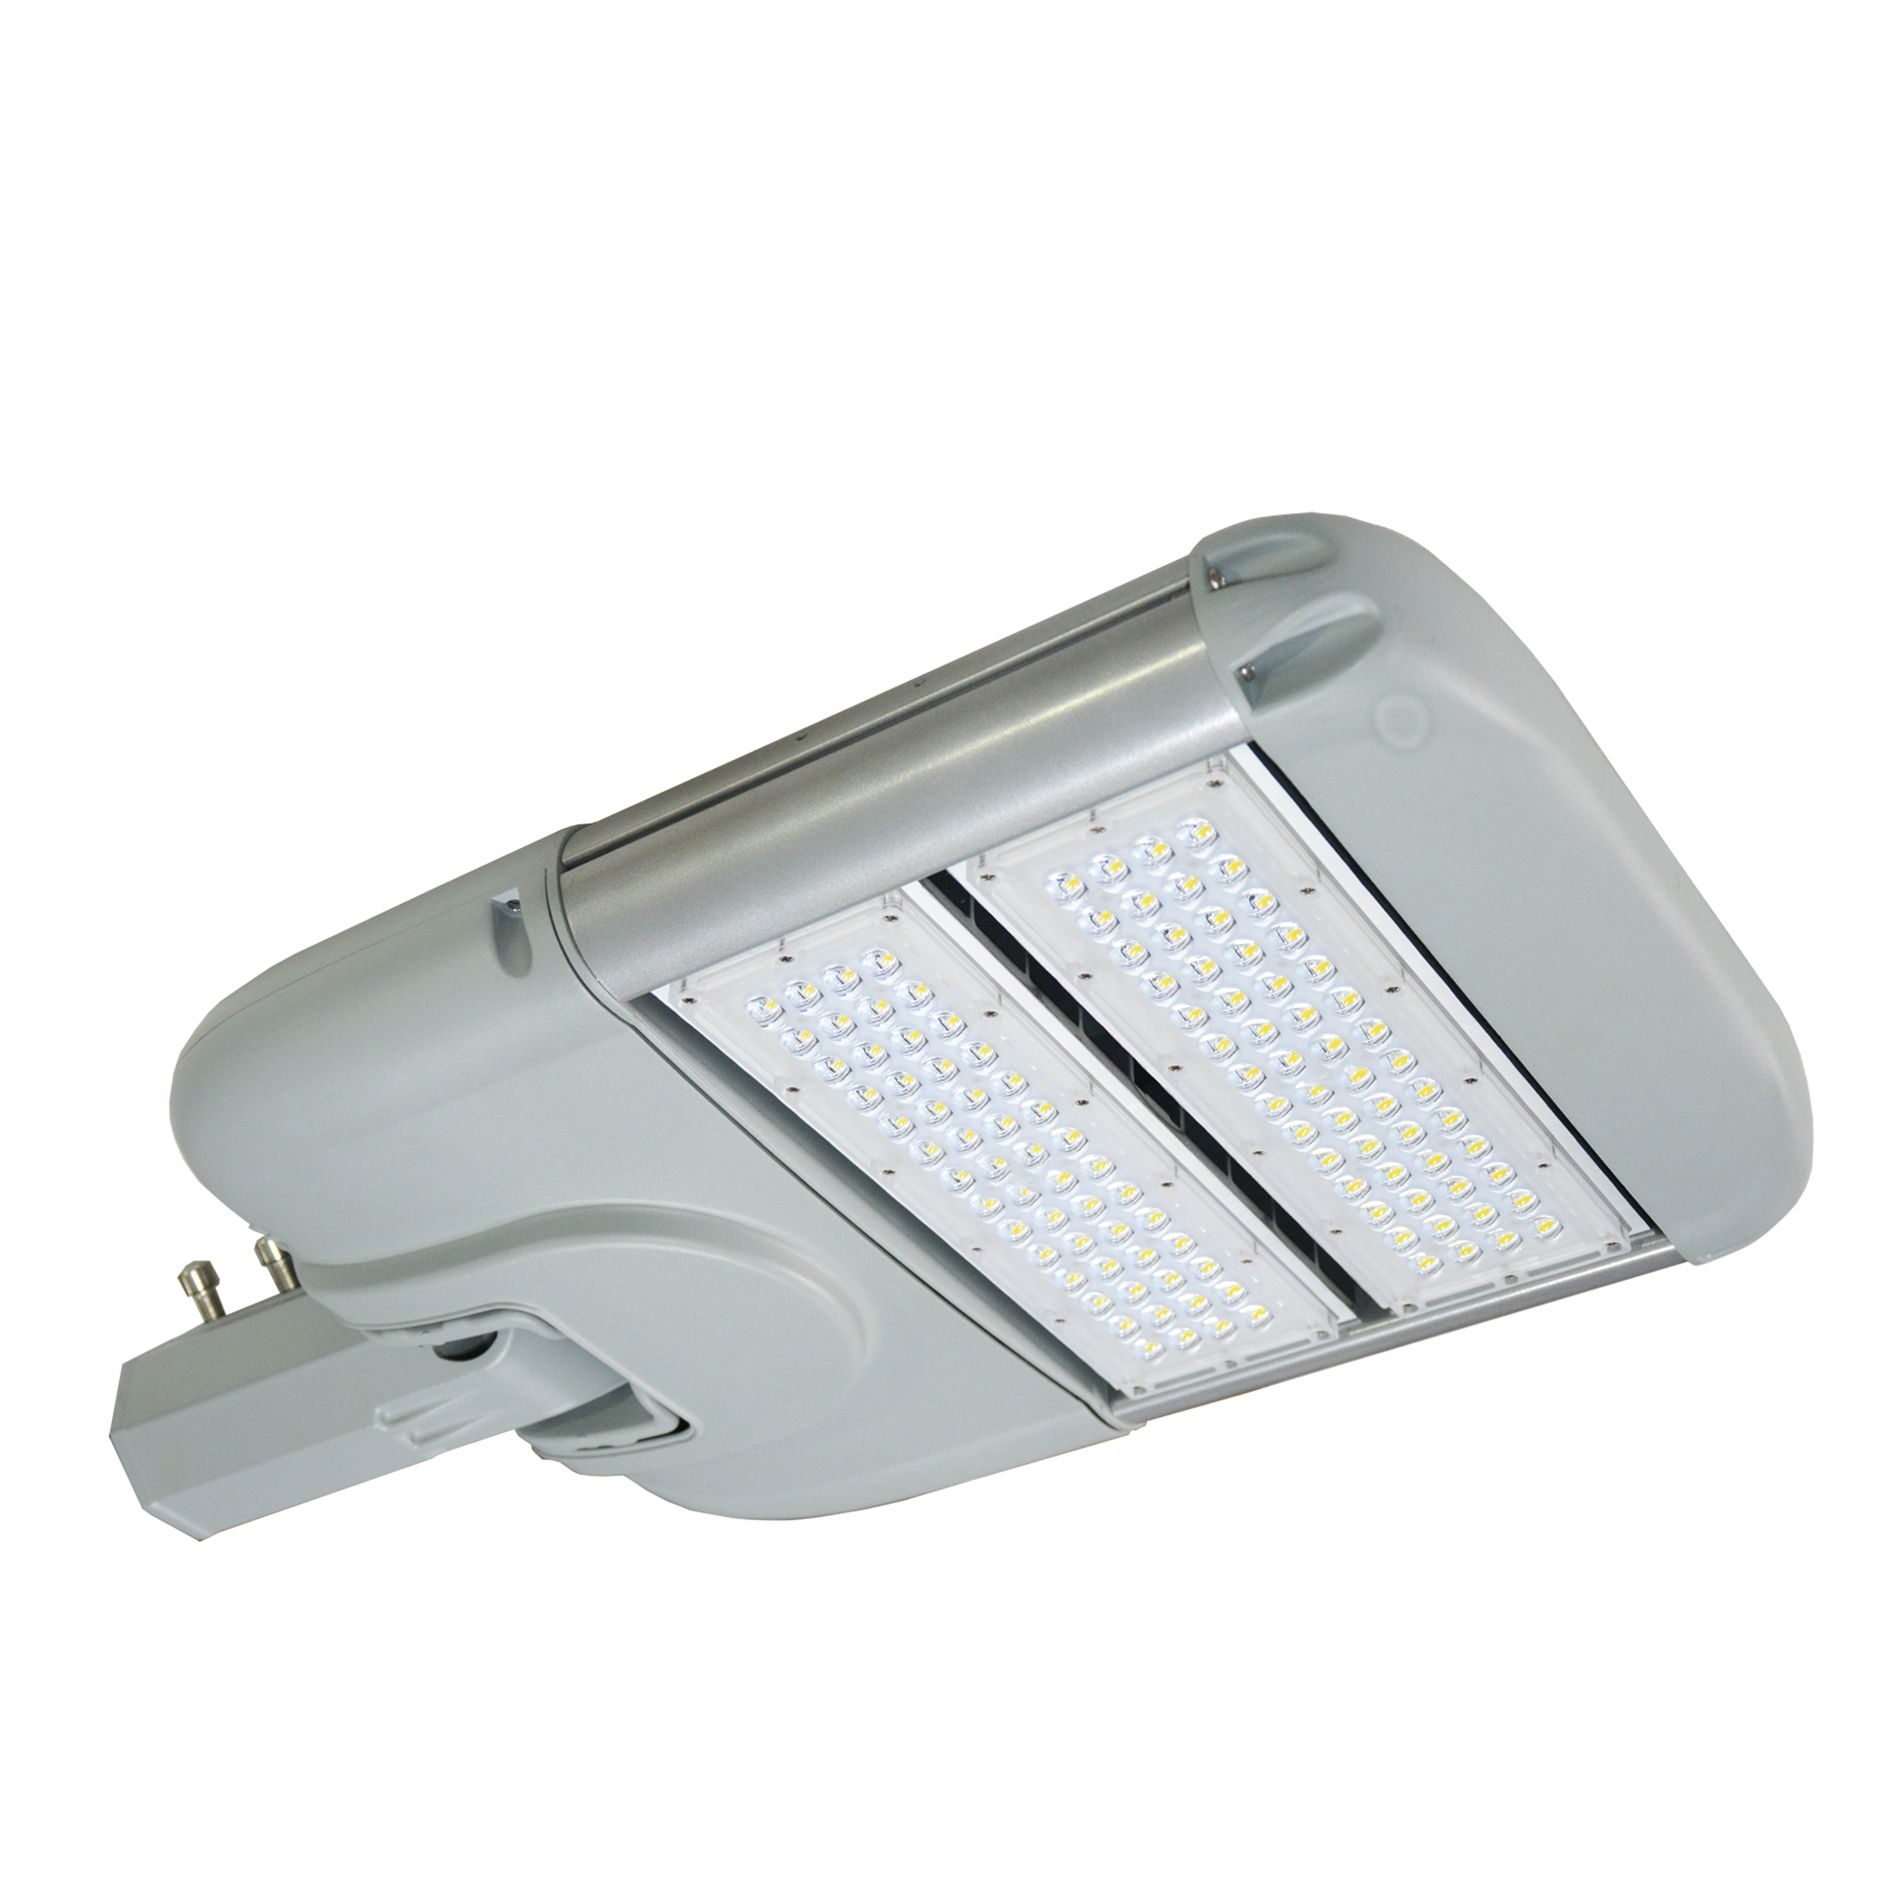 Hot Lamp 30W 60W 90W 120W 150W 180W SMD Model LED Street Lights IP65 6500K